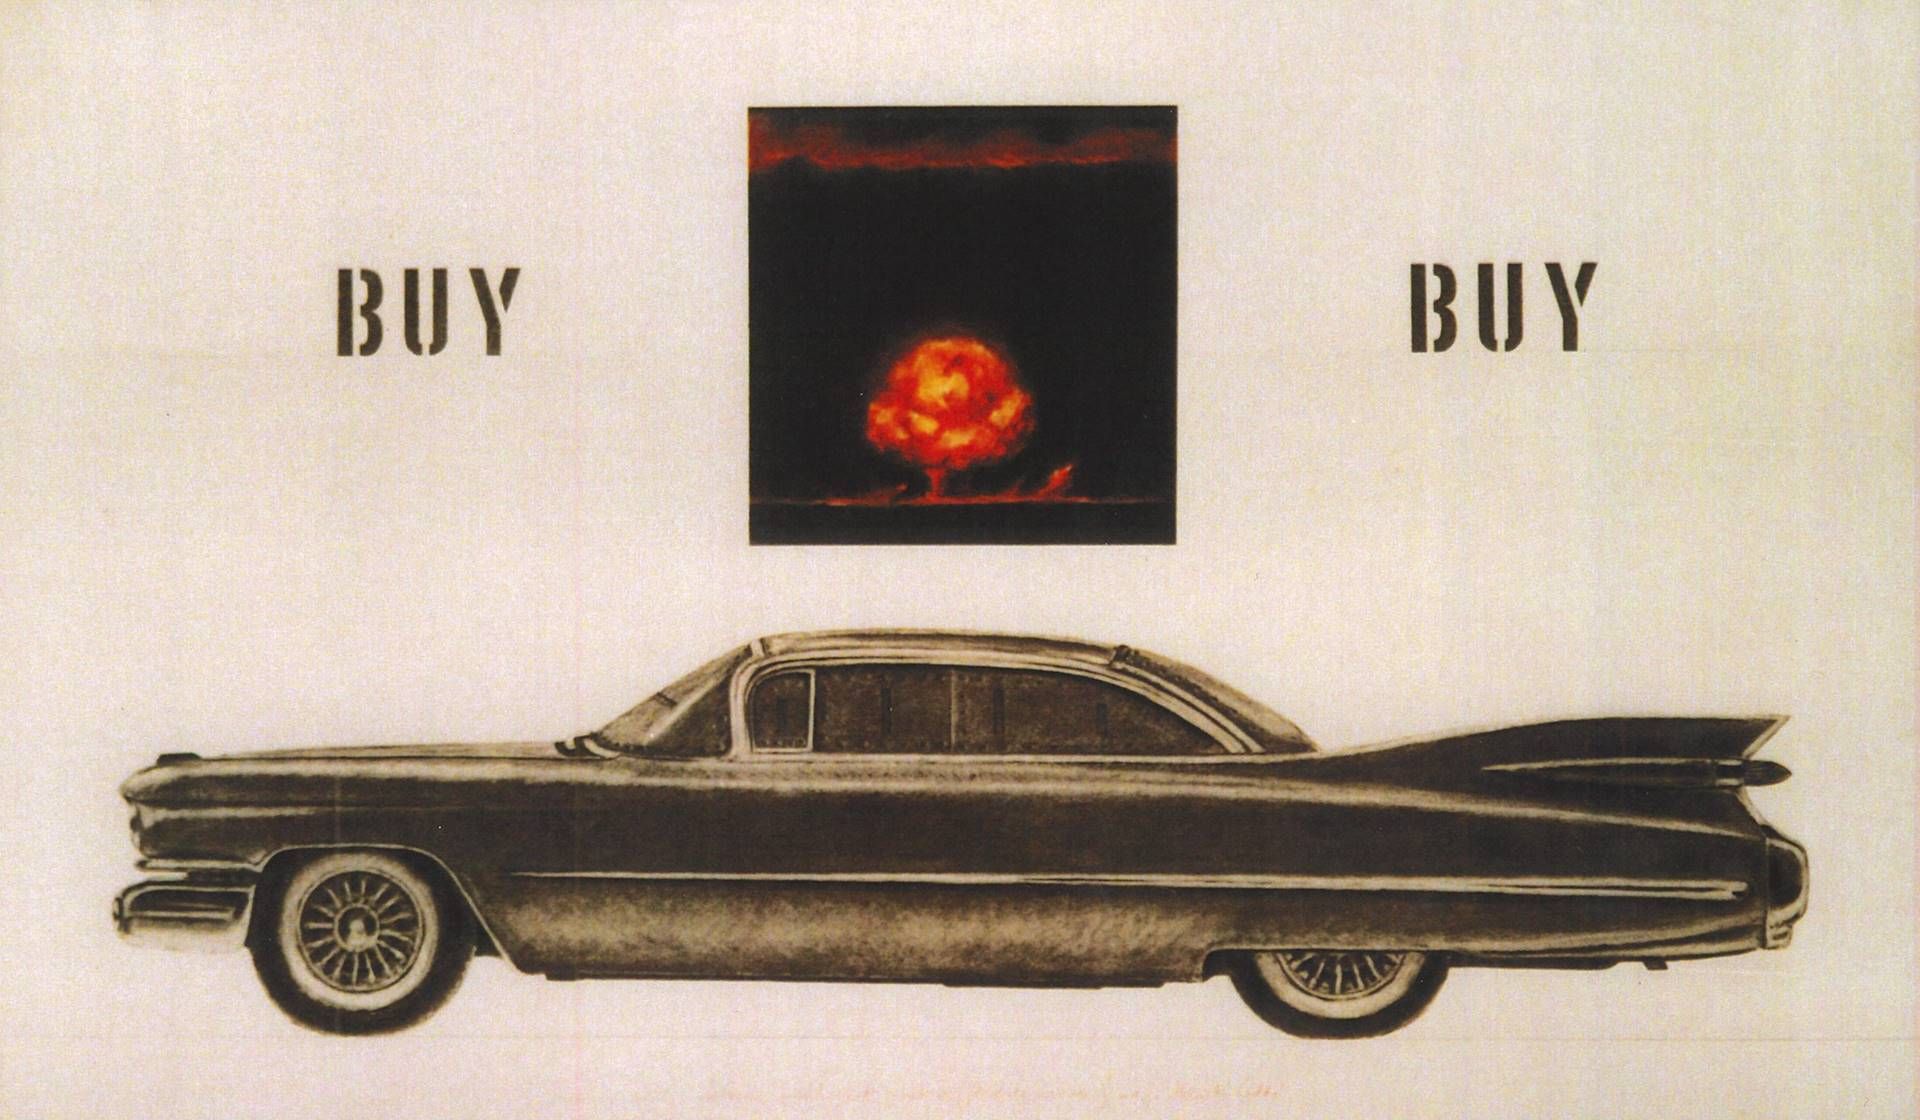 atomic-fallout-shelter-mobile-version-and-or-hermetic-caddy